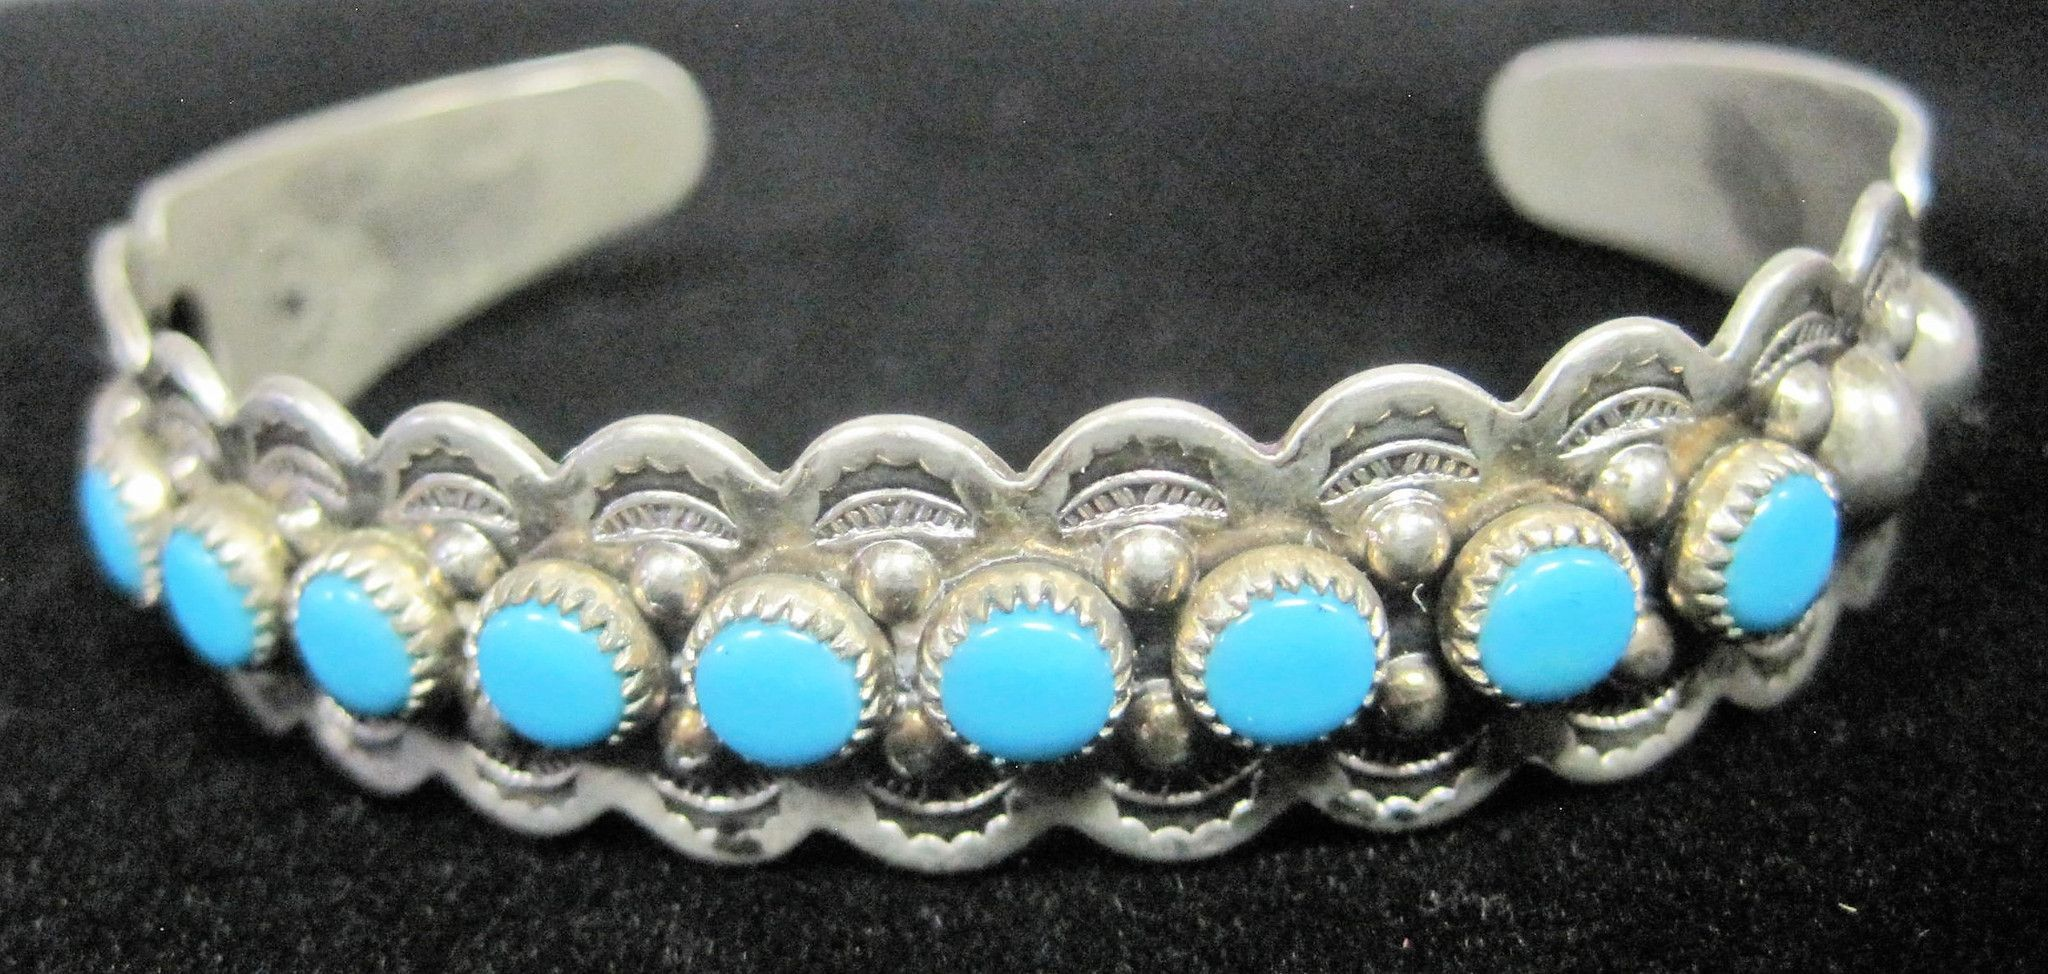 Native American Nickle Silver Bell Turquoise Stoned Cuff Bracelet